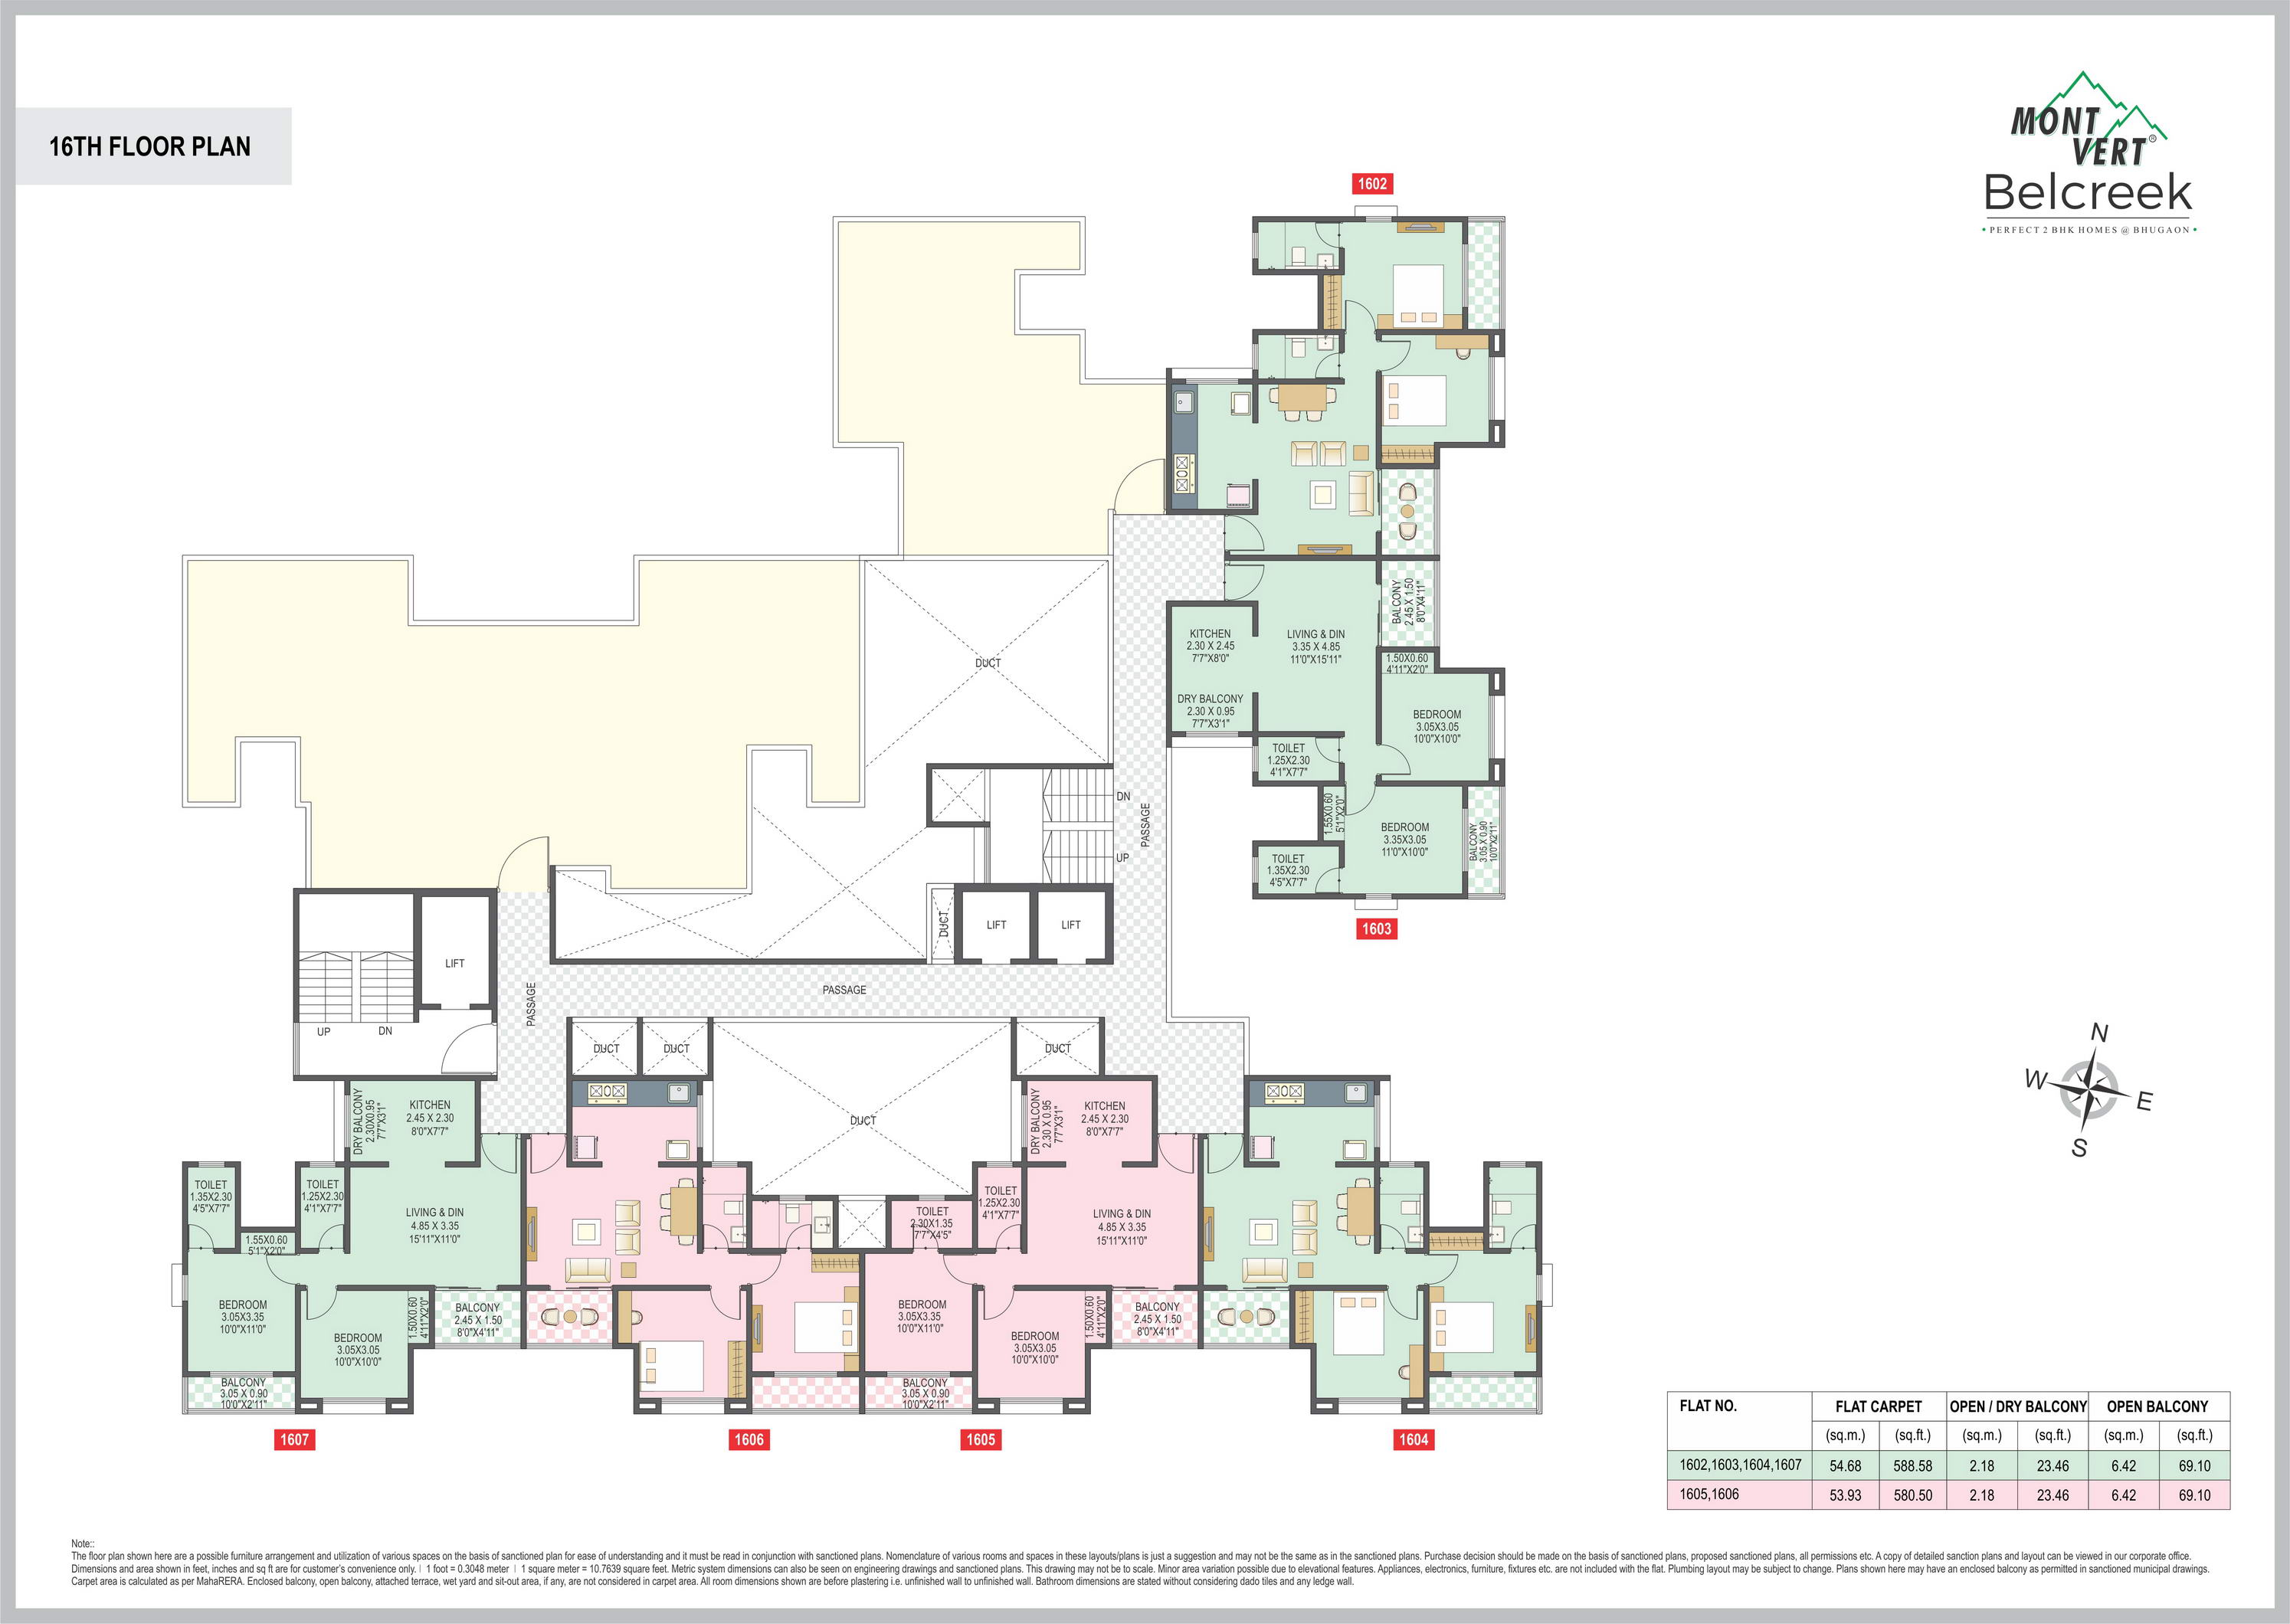 flats-for-sale-in-bhugaon-mont-vert-belcreek-penthouse-plan